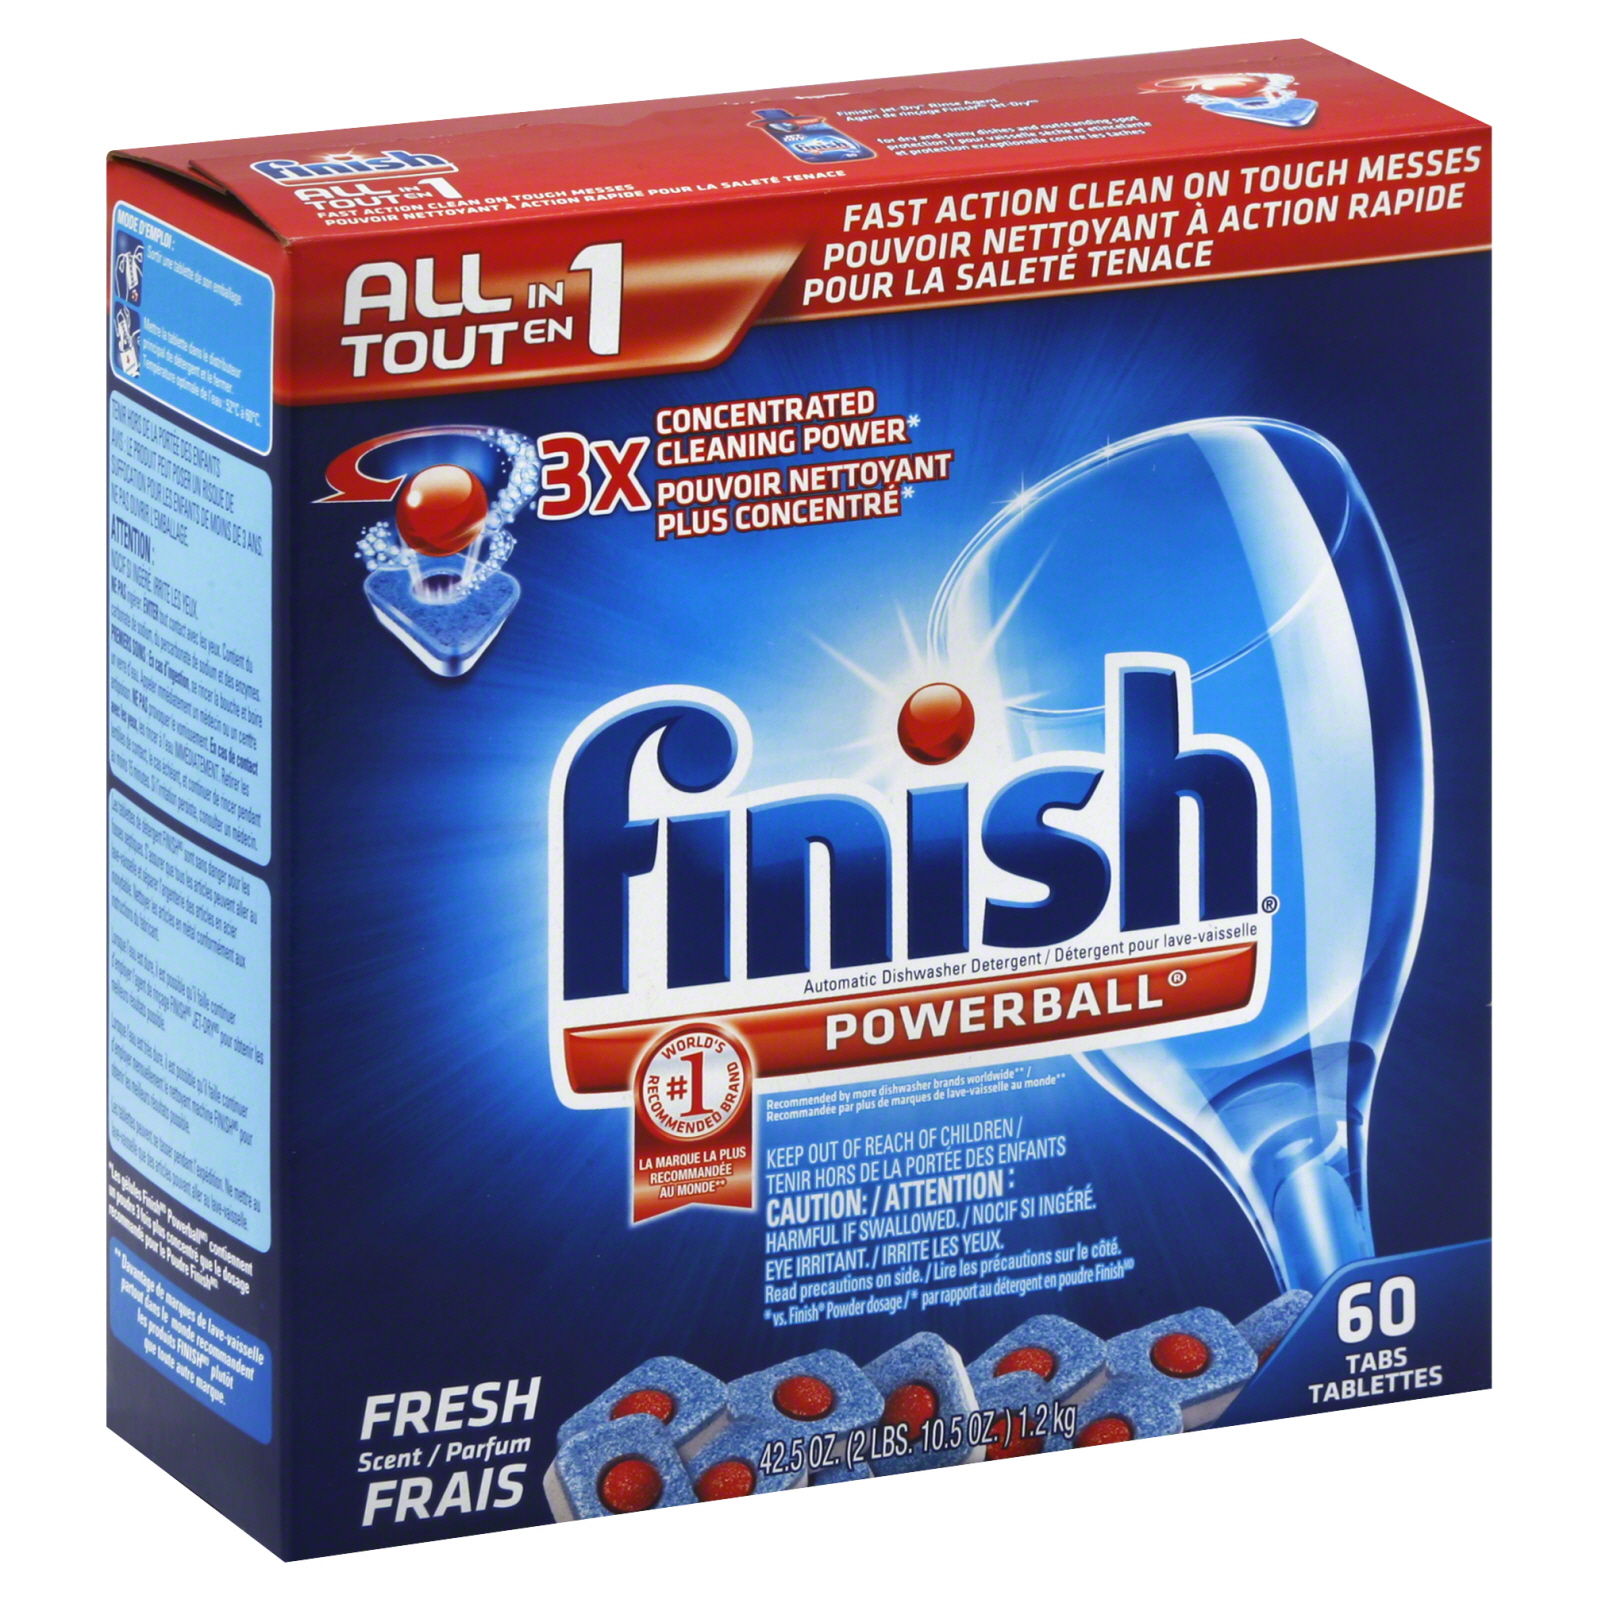 Automatic Dishwasher Detergent, Powerball,